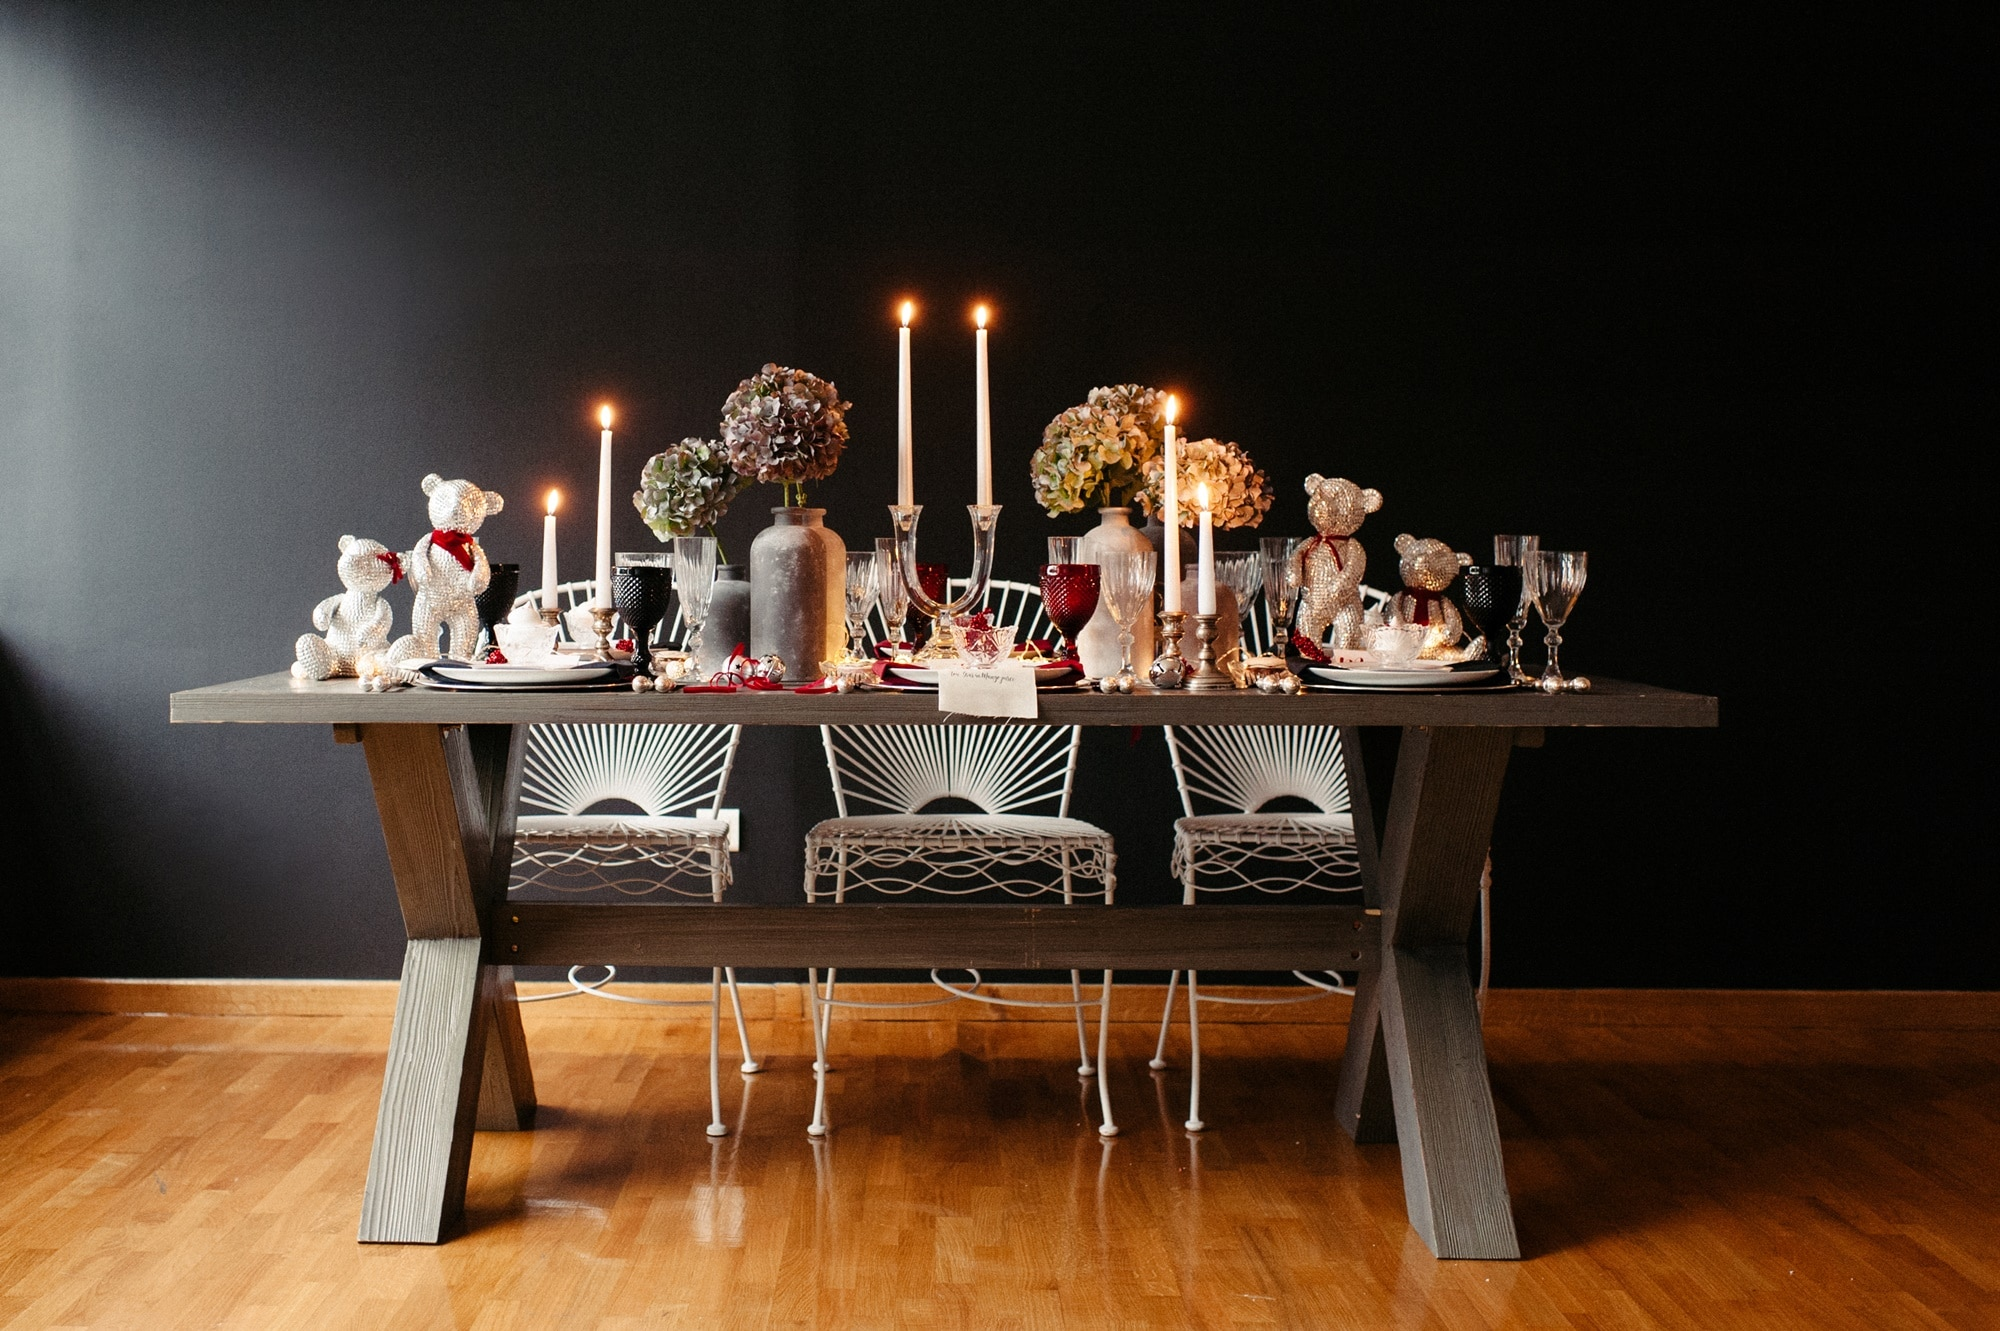 An industrial Christmas table